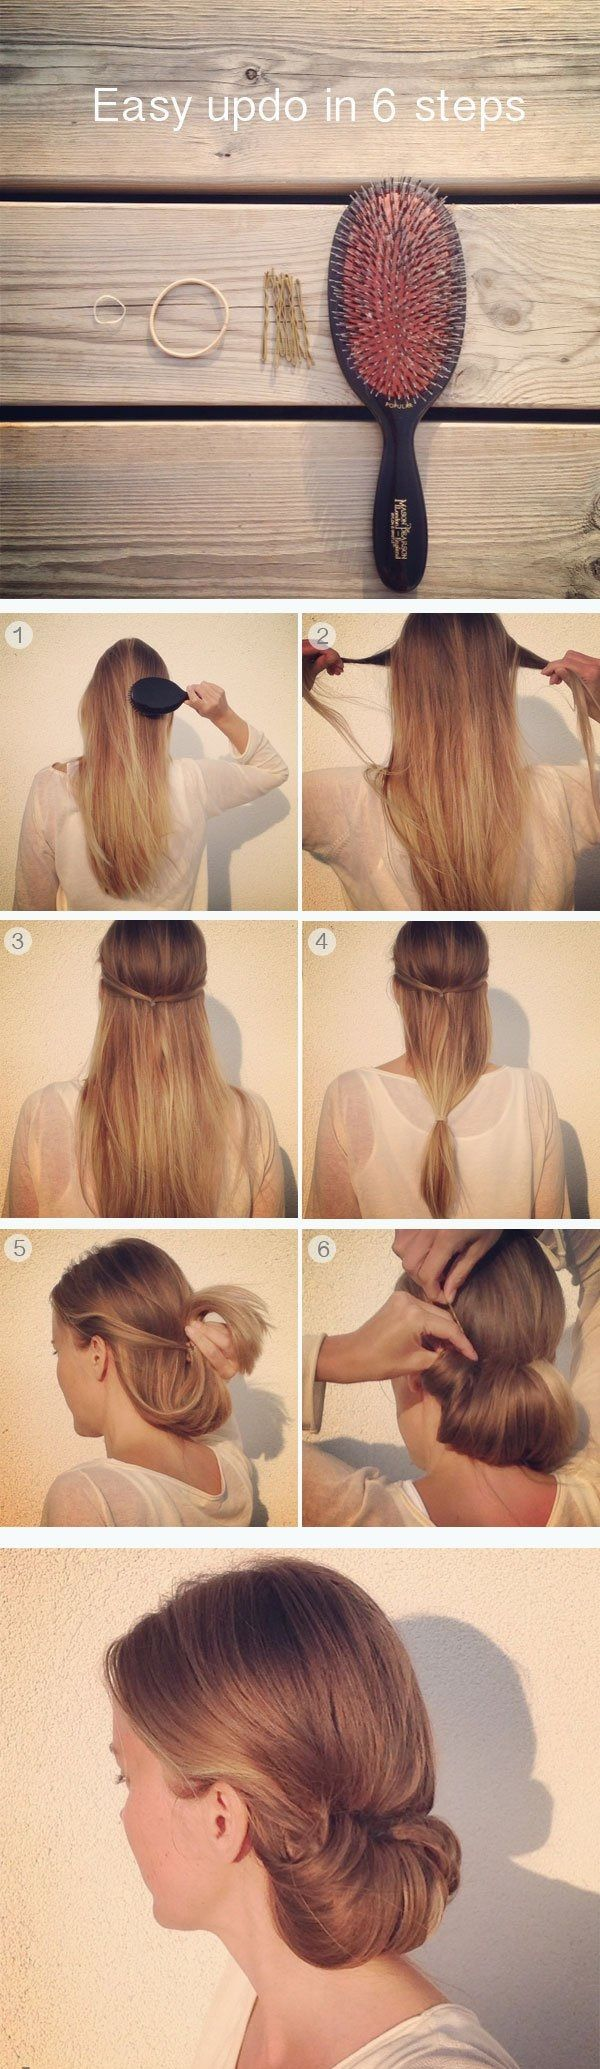 Some Easy Office Hairstyle Tutorials